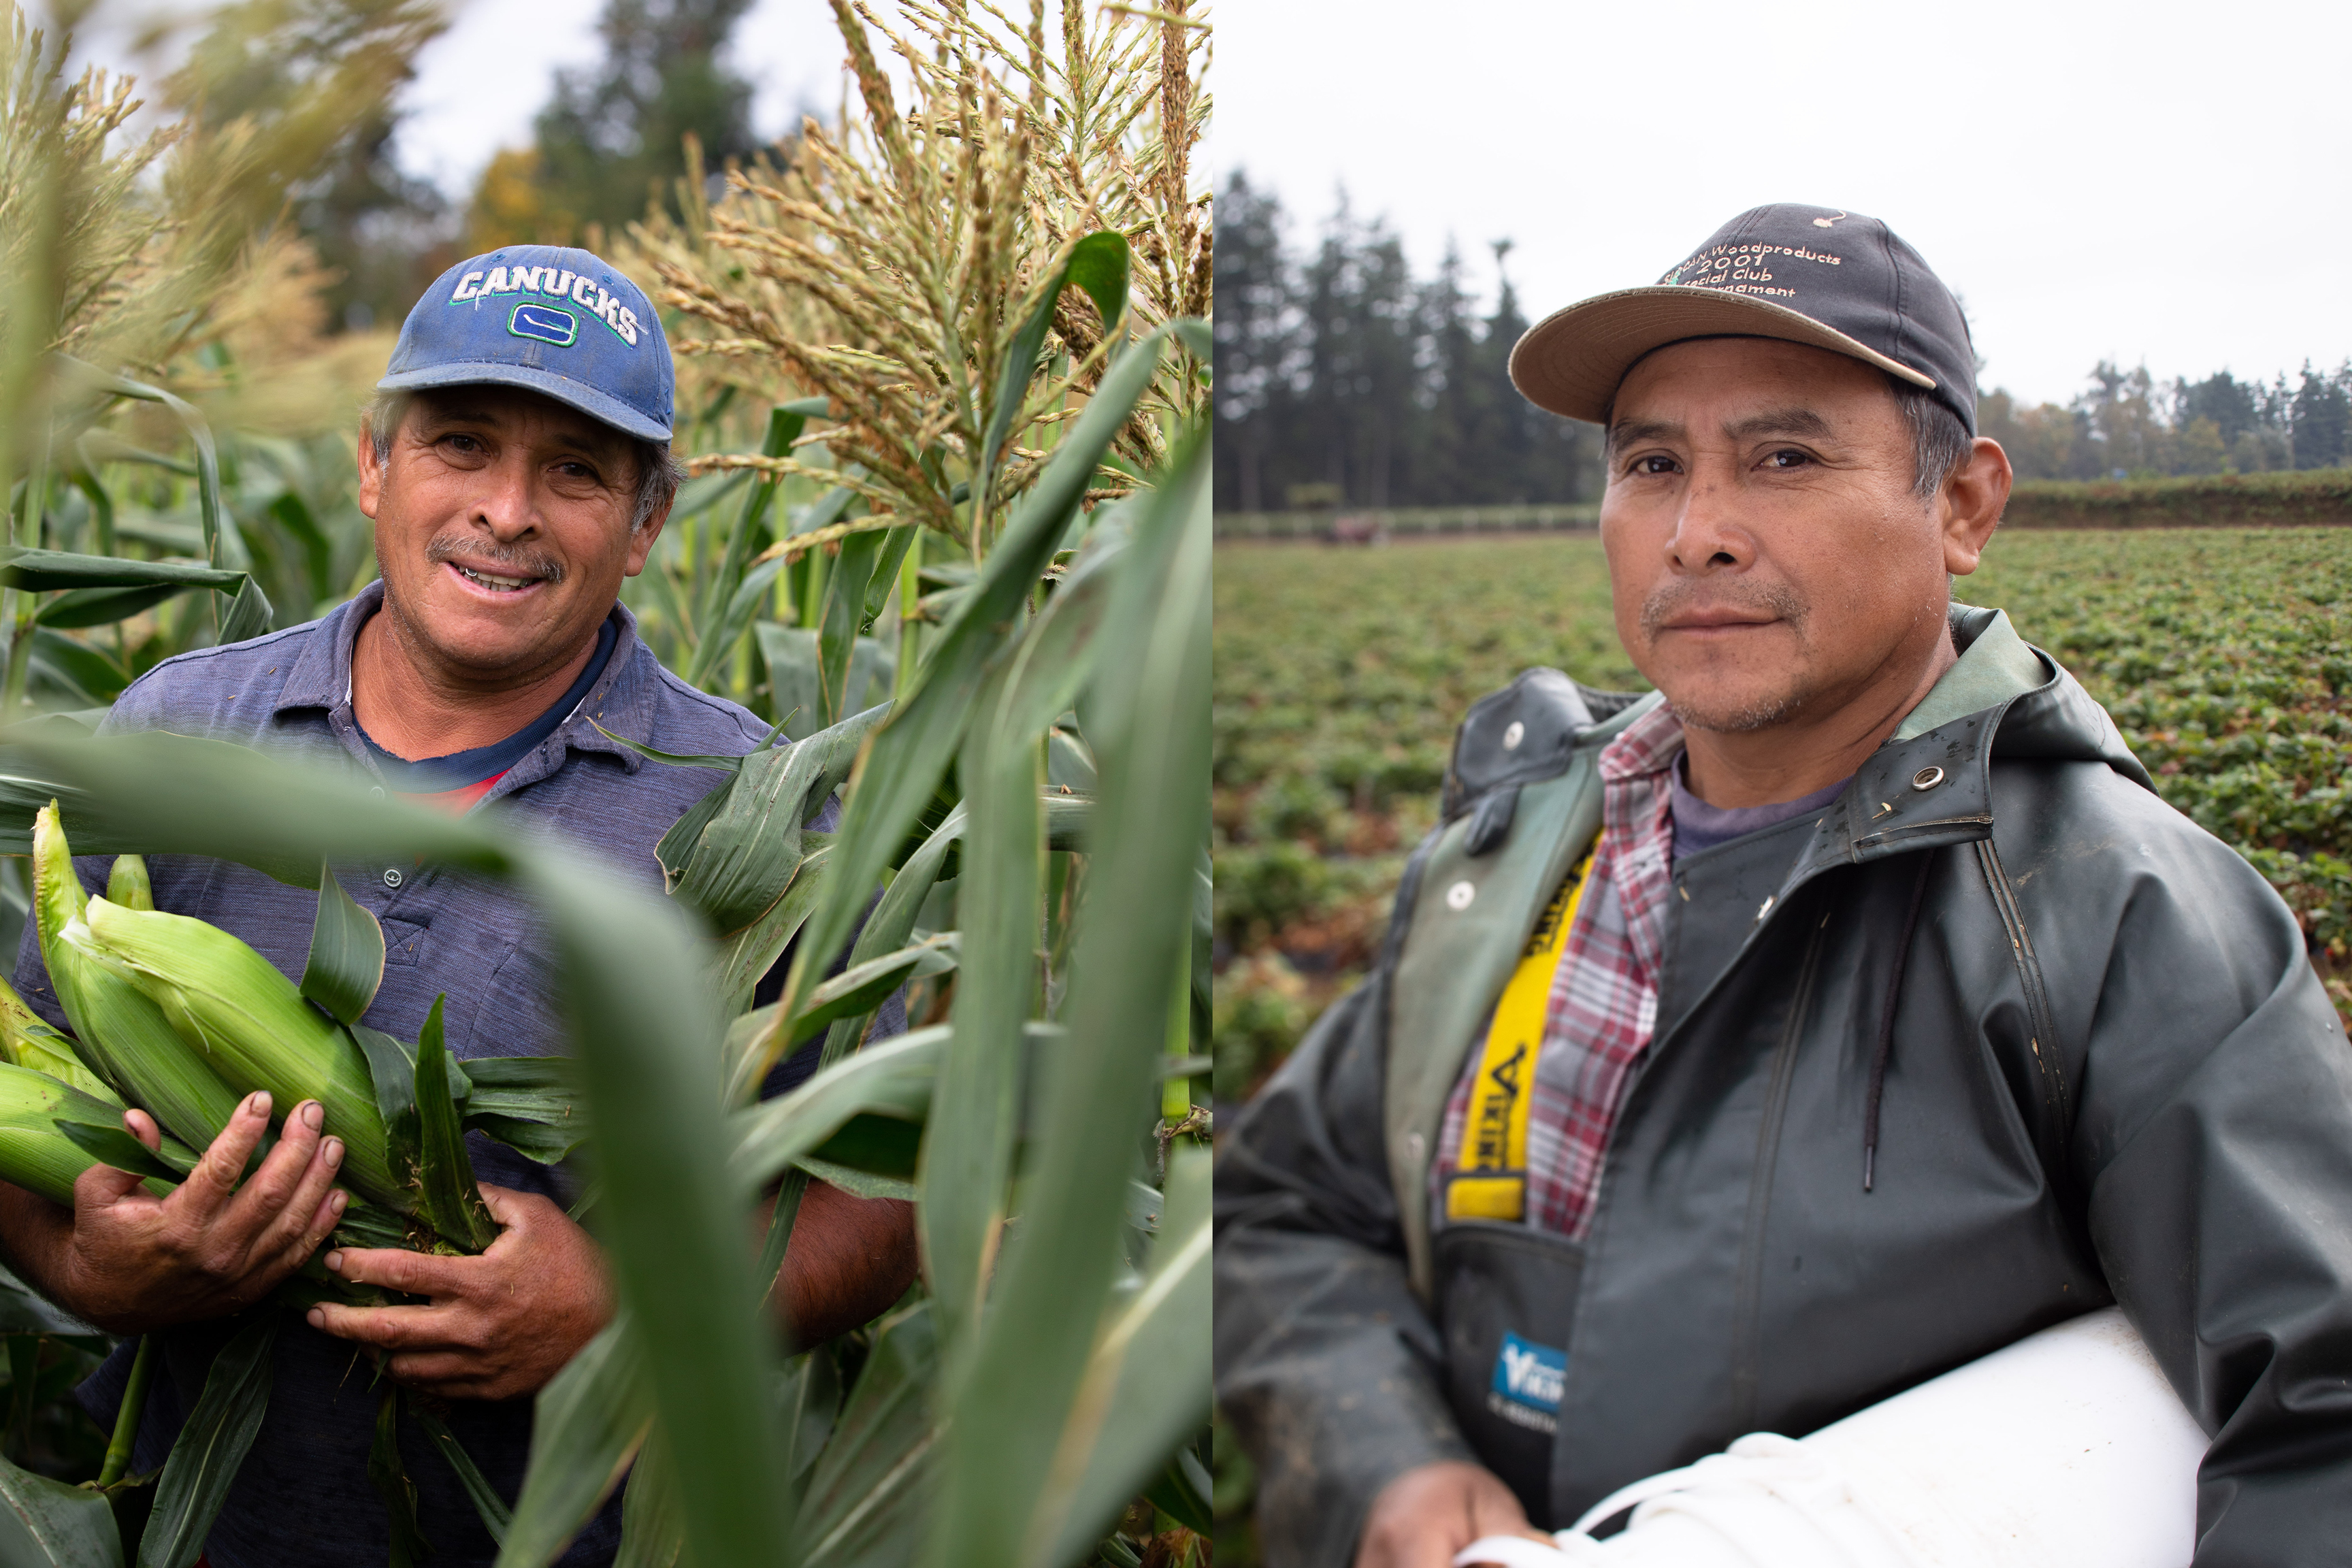 Miguel Lizama, left, and Manuel Can, pictured at Neufeld Farms in Abbotsford, B.C., on Sept. 9, 2019. They are migrant farm workers from Mexico working to send money back to their families. (Maggie MacPherson/CBC)